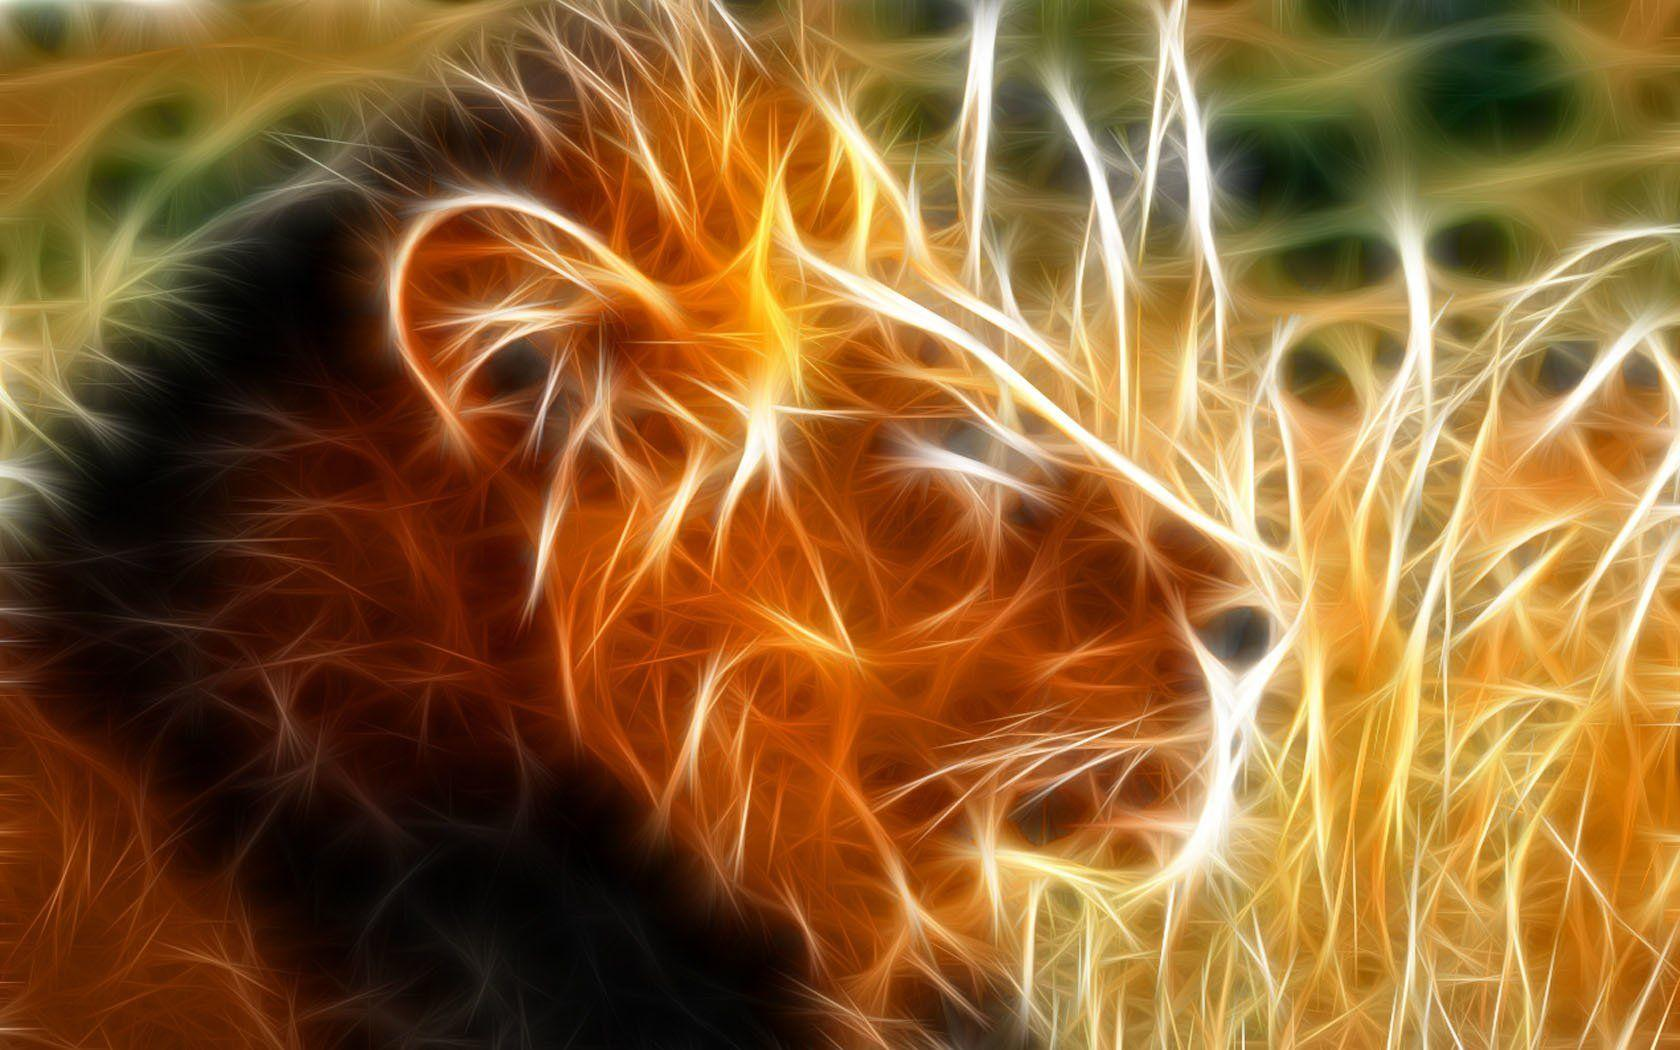 High Quality 991 Lion HD Wallpapers | Backgrounds   Wallpaper Abyss